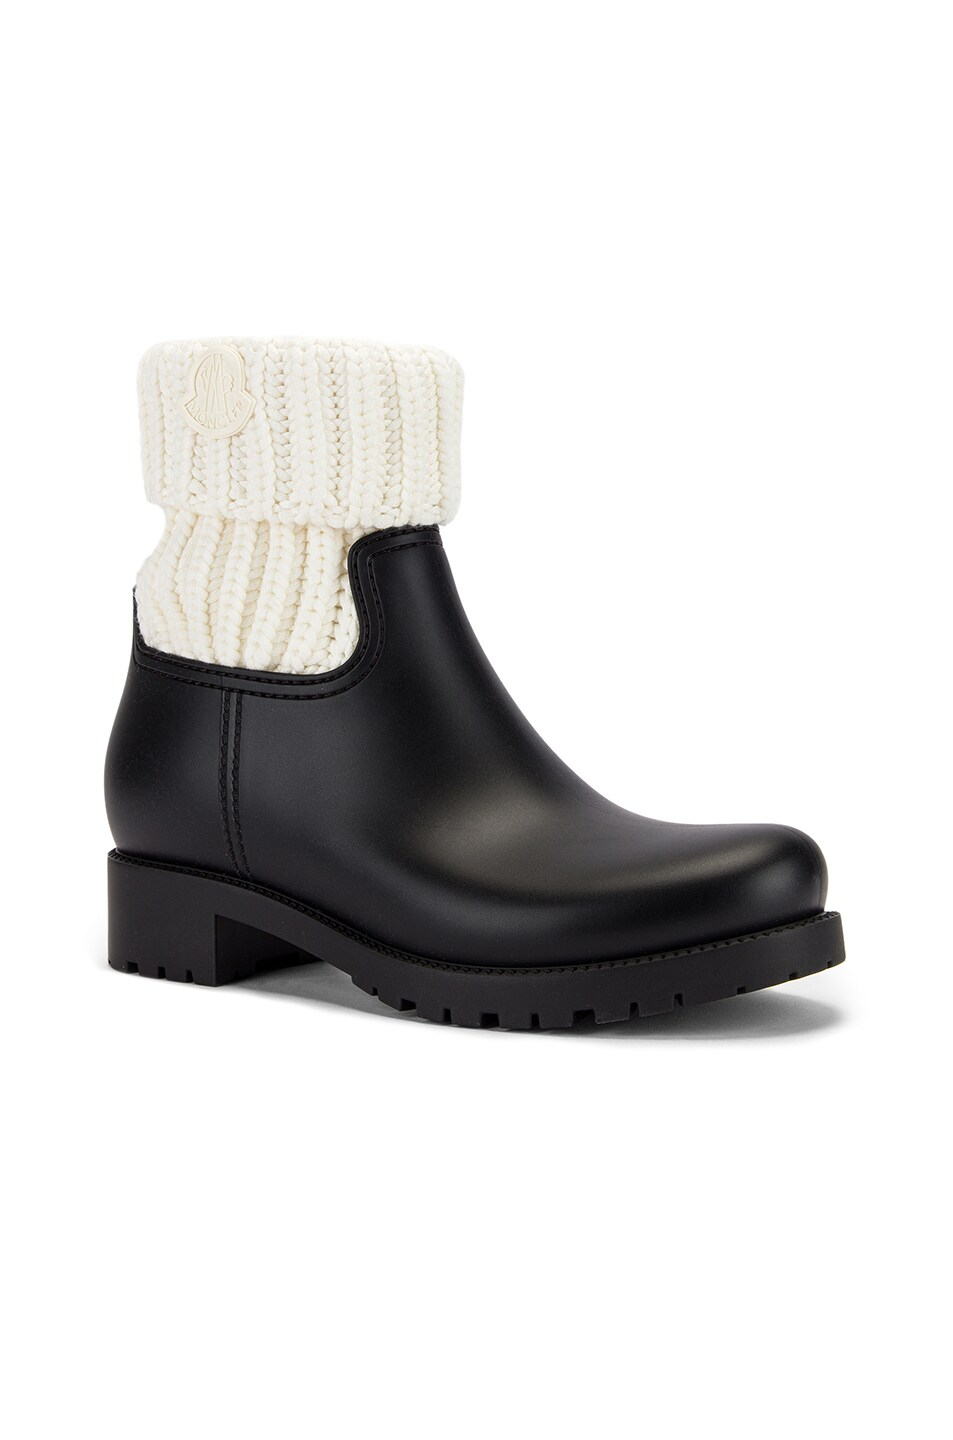 Image 2 of Moncler Ginette Knit Boot in Black & White